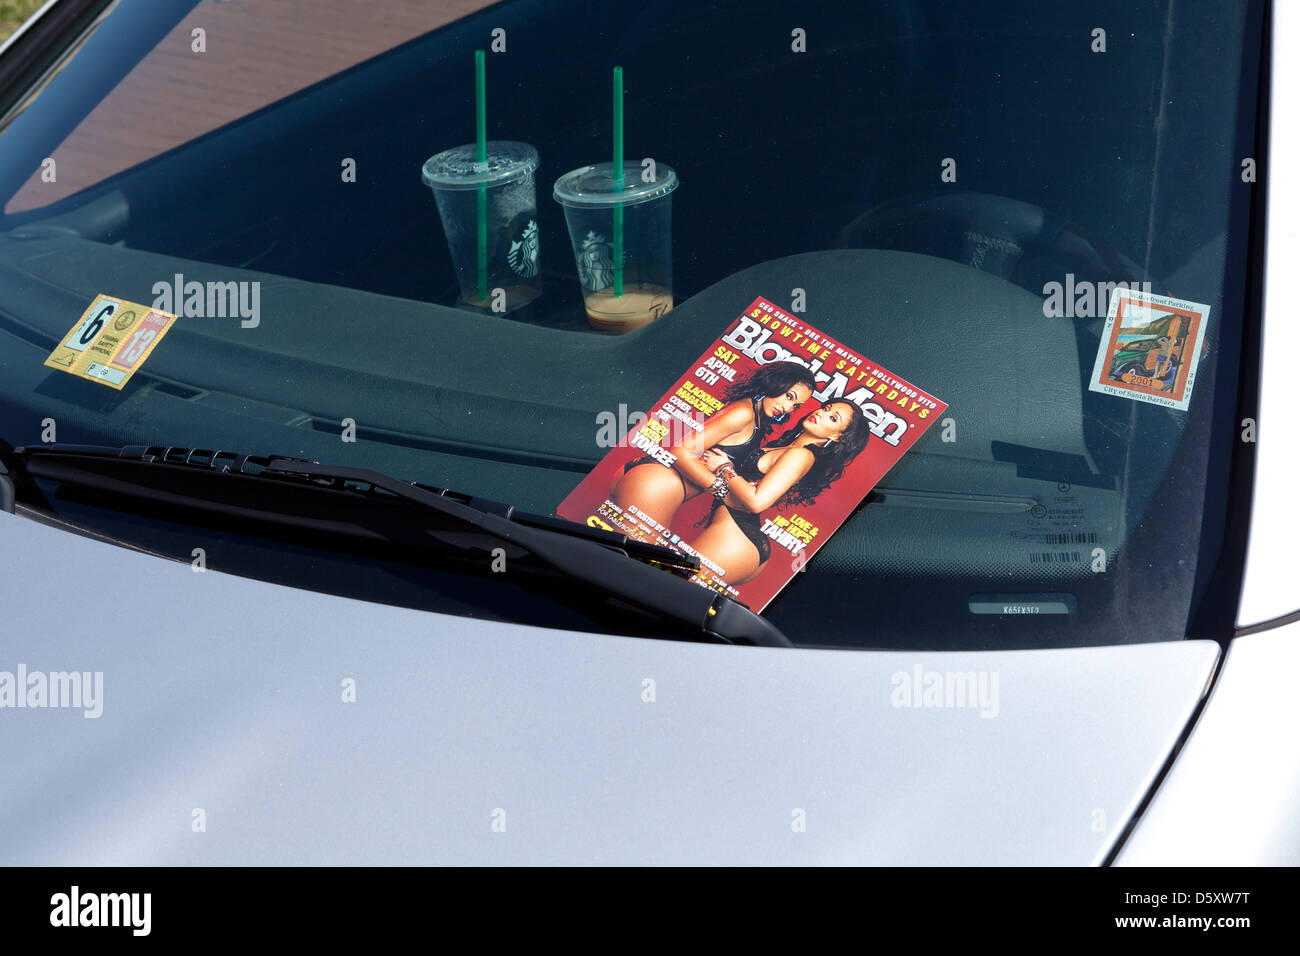 Adult entertainment ad on car windshield - Stock Image